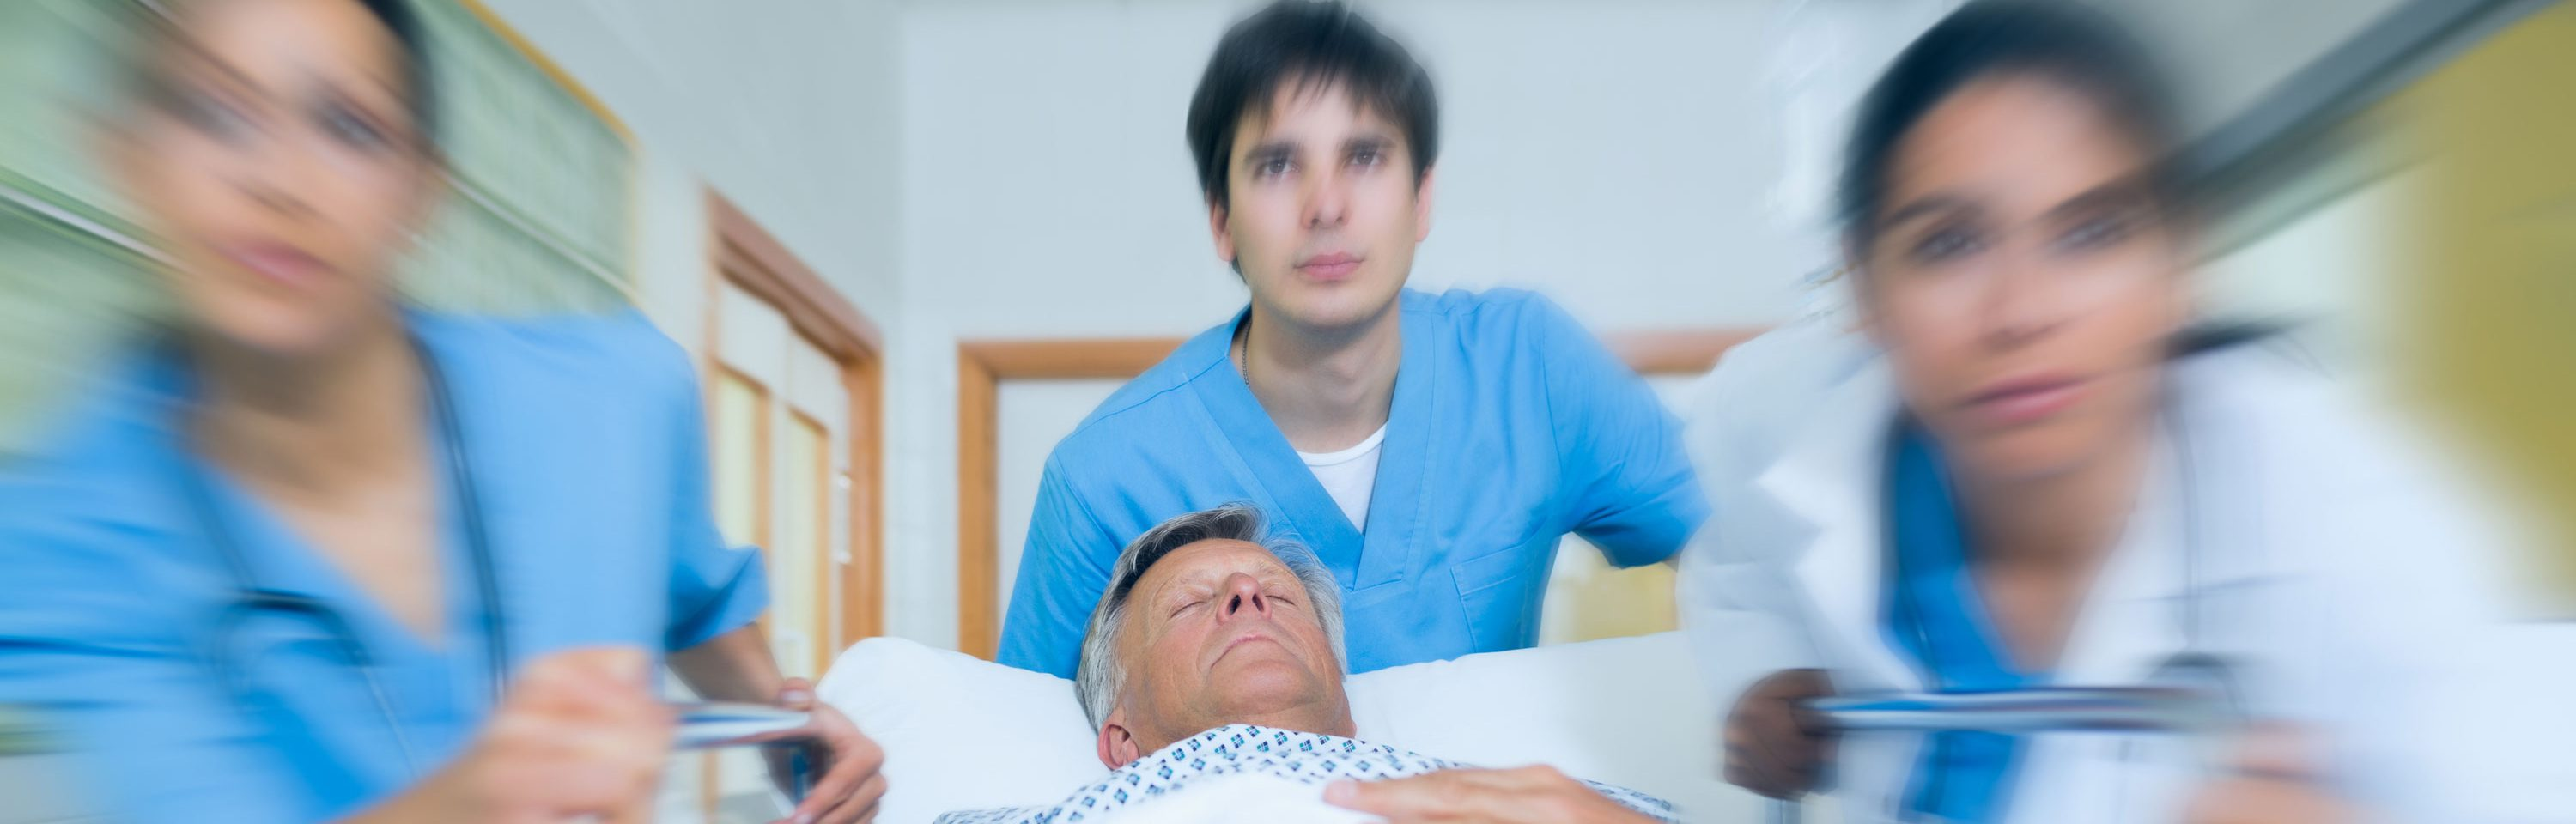 Hospital Emergency, Reasons to Give to Port Perry Hospital